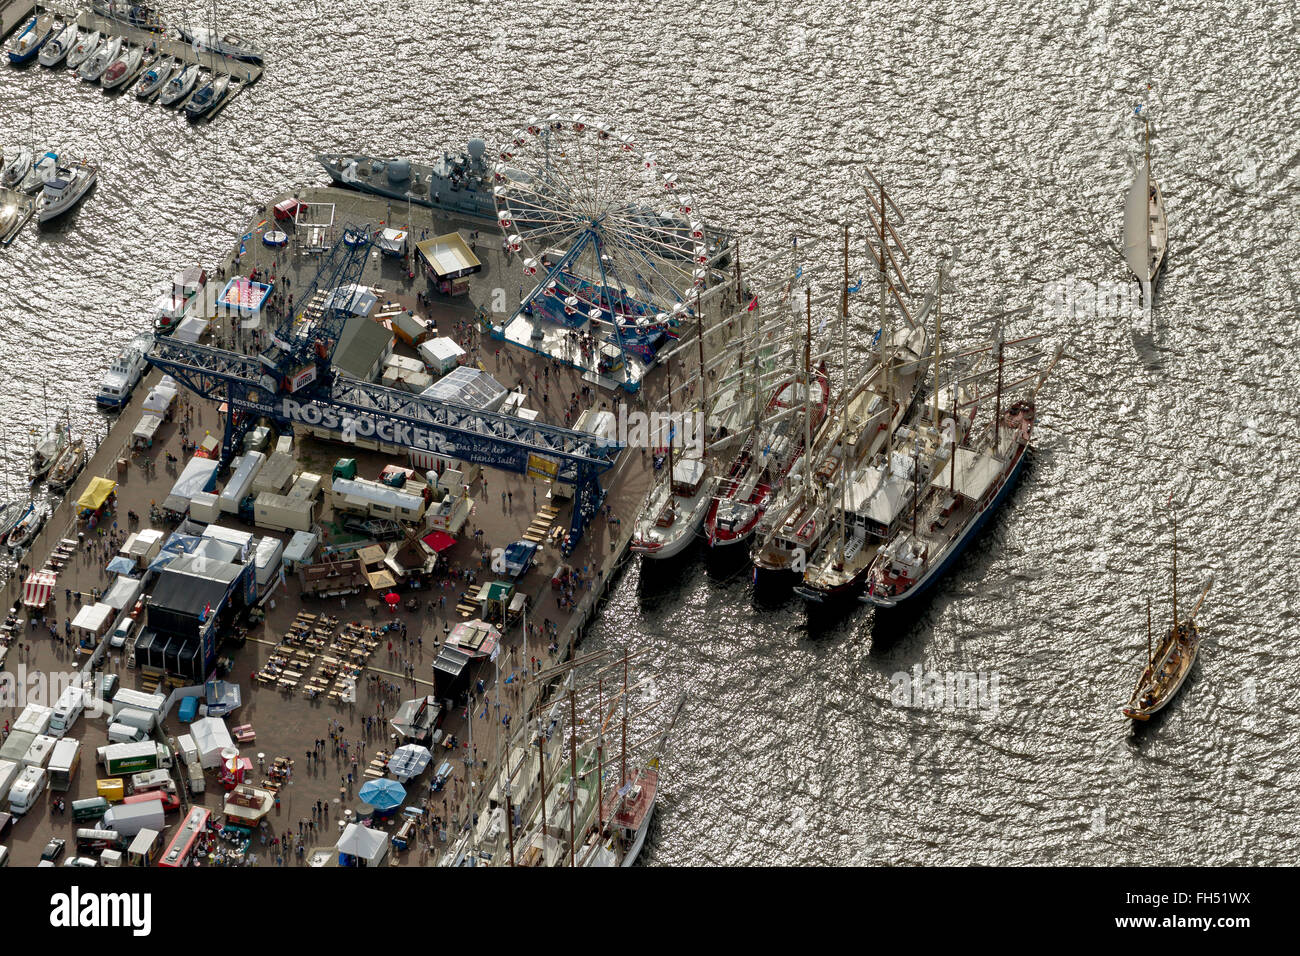 Aerial view, Museum Rostock, Rostock Hanse Sail, Rostock, Baltic Sea, Baltic Sea, Mecklenburg-Vorpommern, Germany, - Stock Image